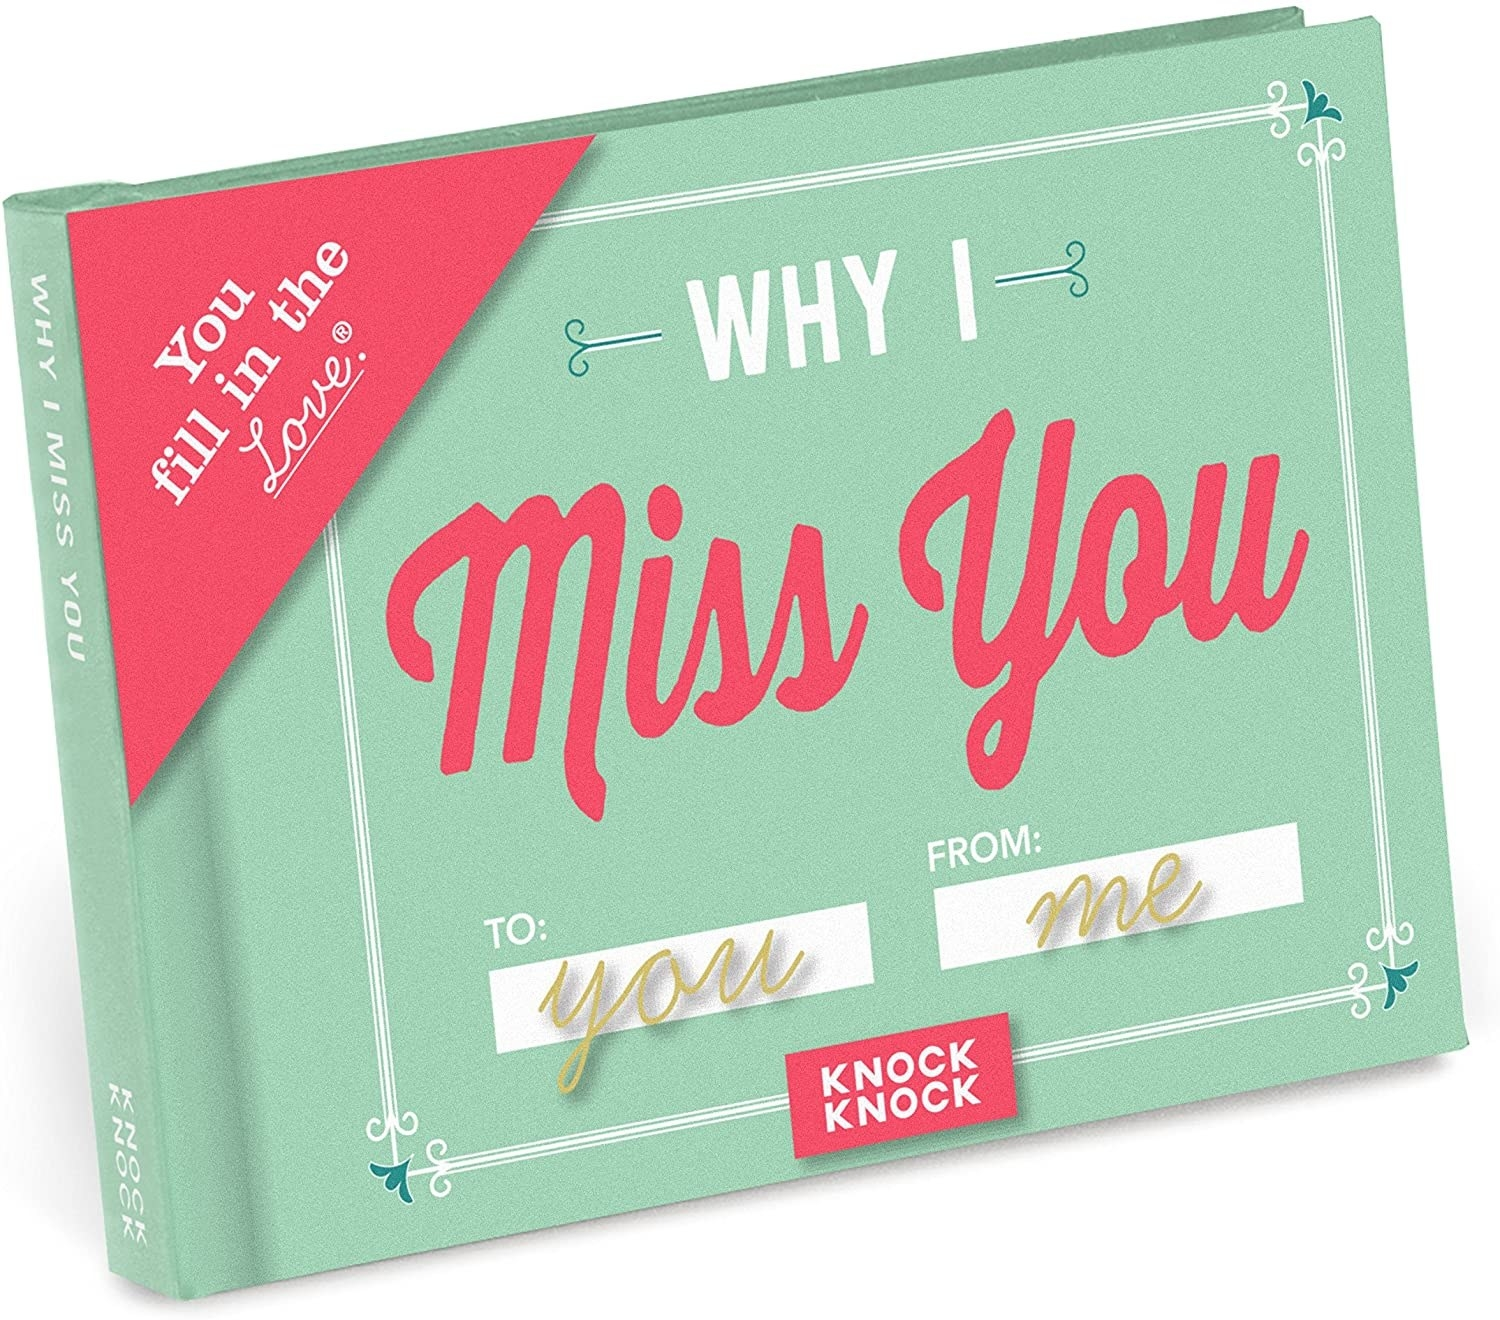 The Why I Miss You notebook